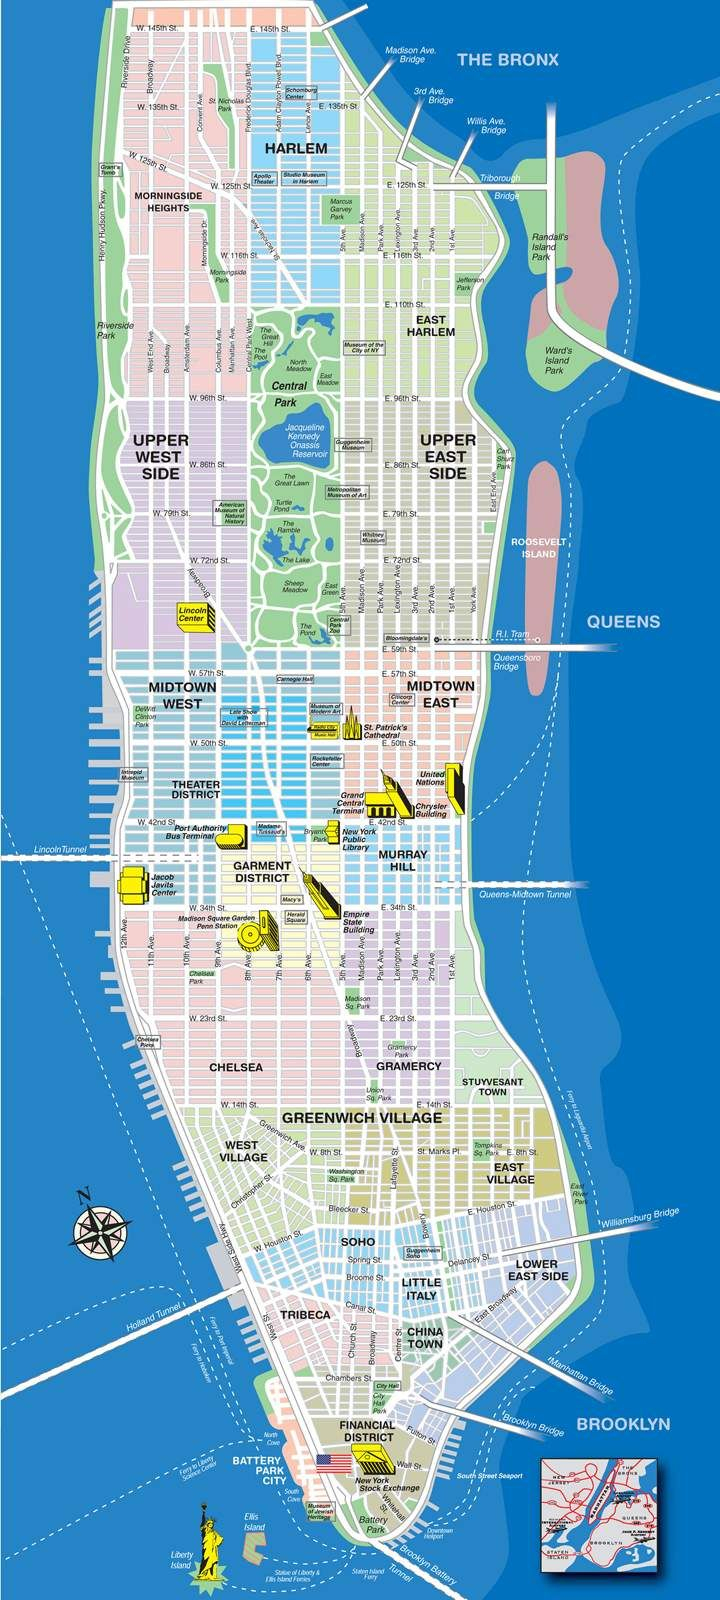 High-Resolution Map Of Manhattan For Print Or Download | Usa Travel - Printable Street Map Of Manhattan Nyc